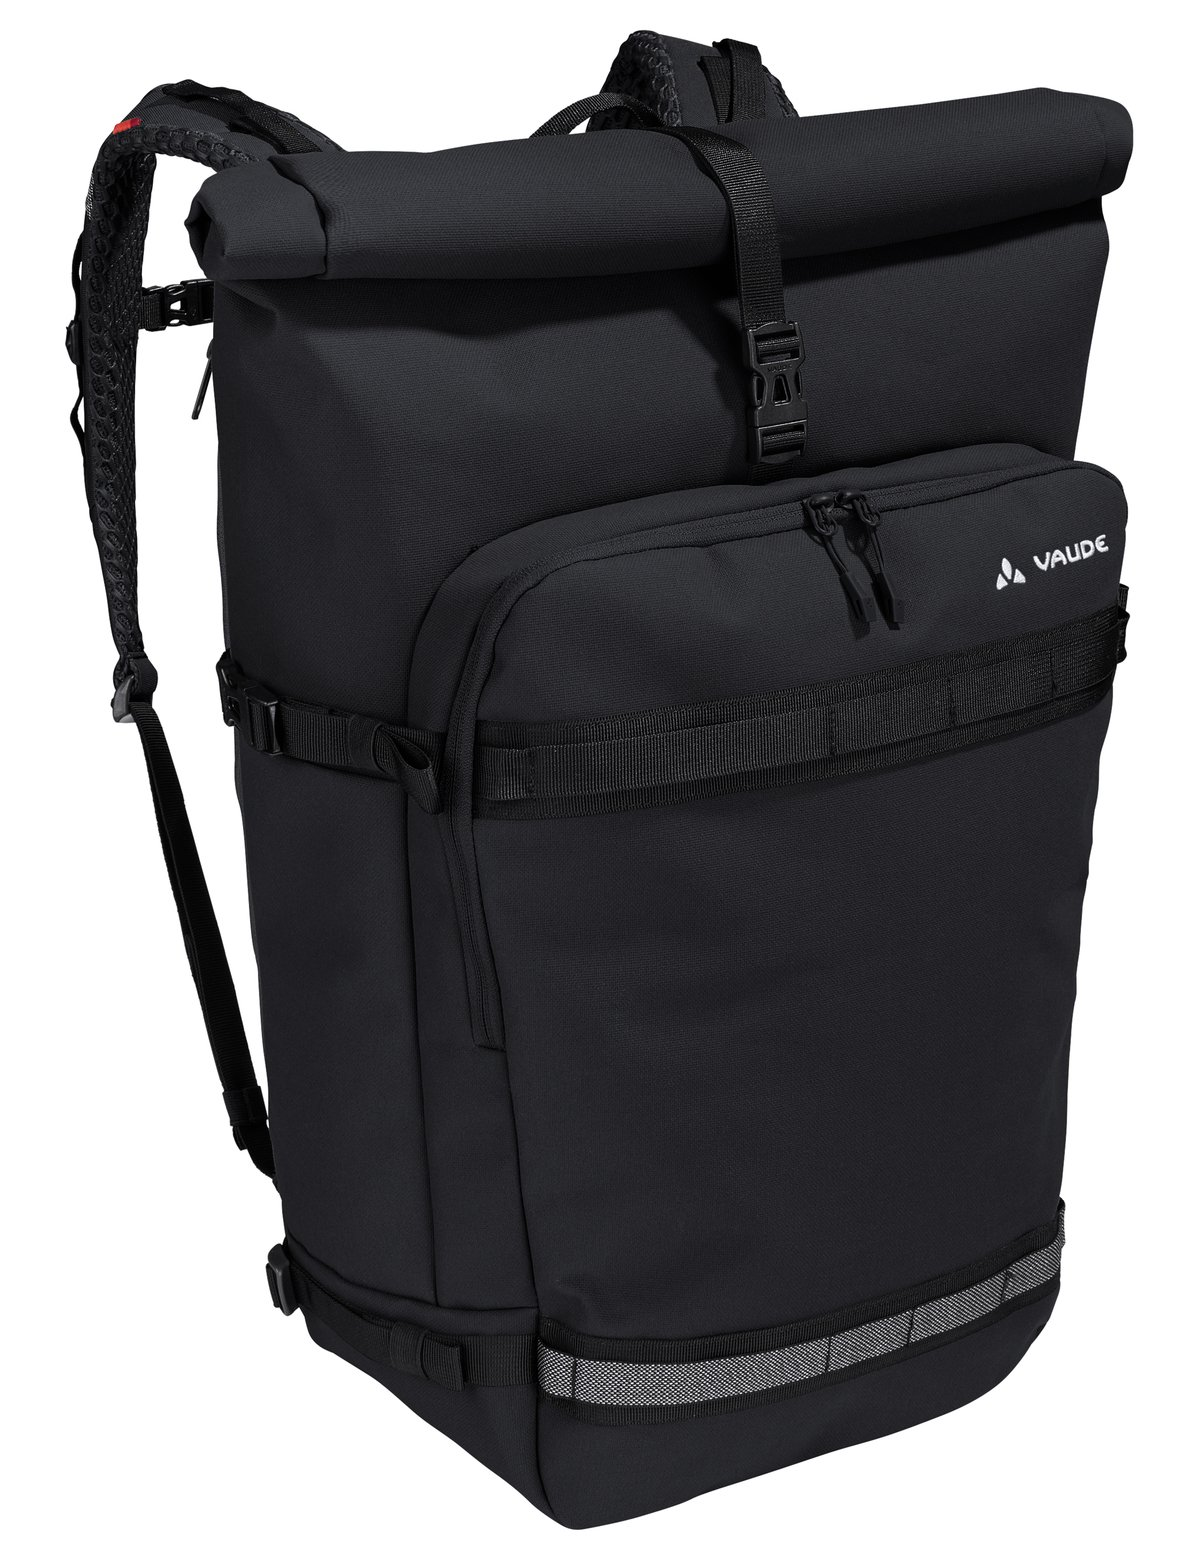 ExCycling Pack-VAUDE